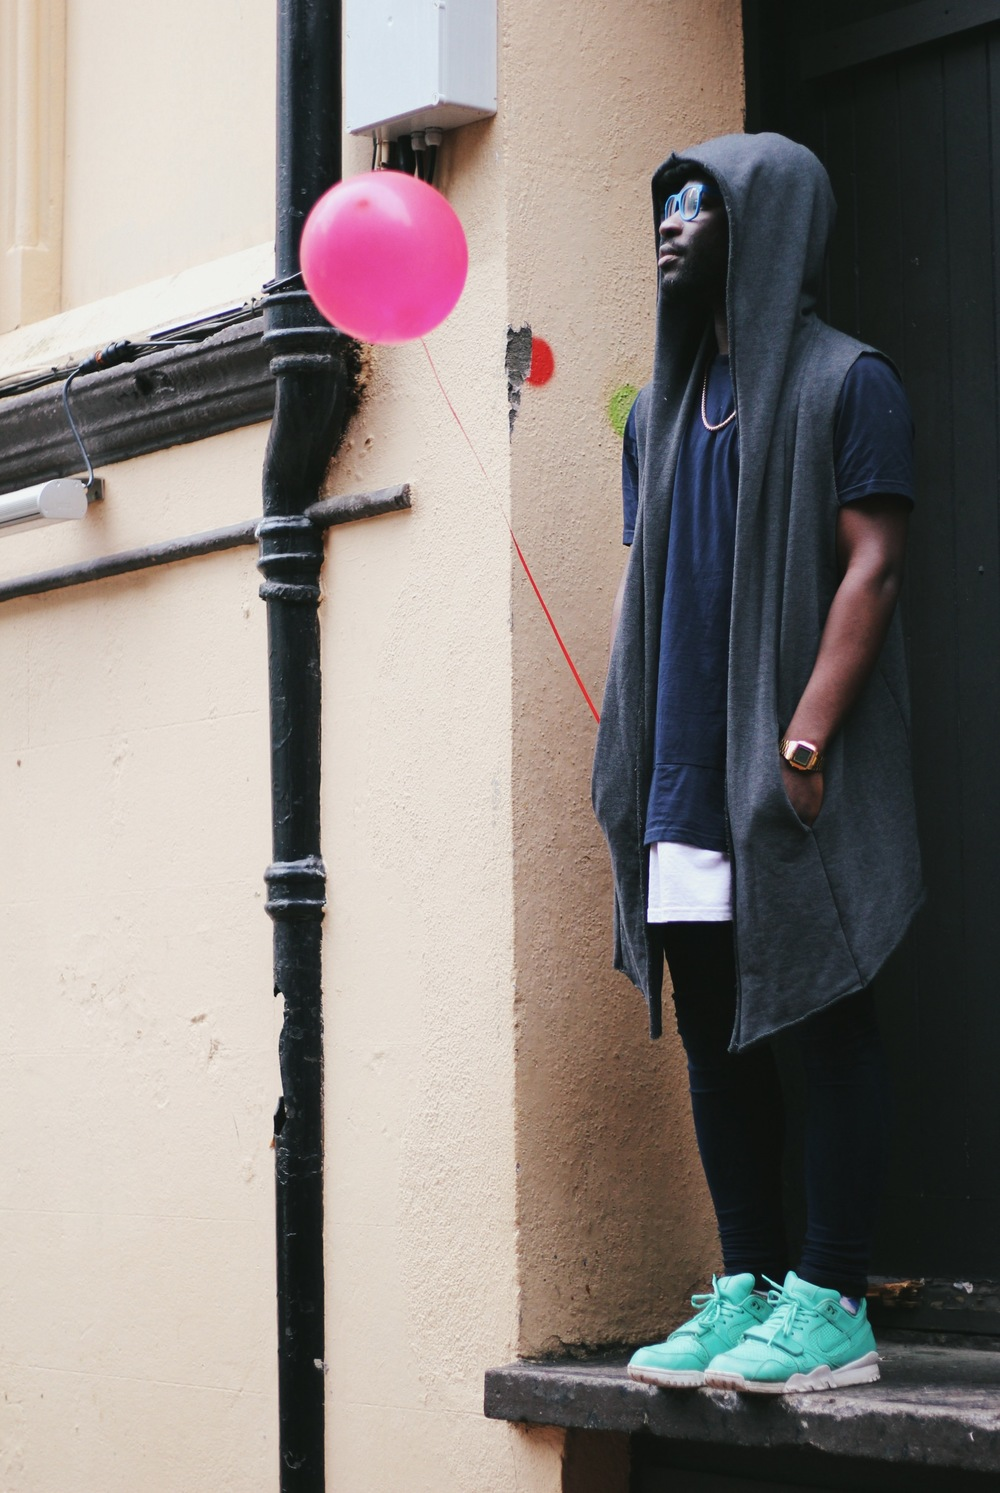 This shot was inspired by Banksy's 'Girl with a balloon' piece...